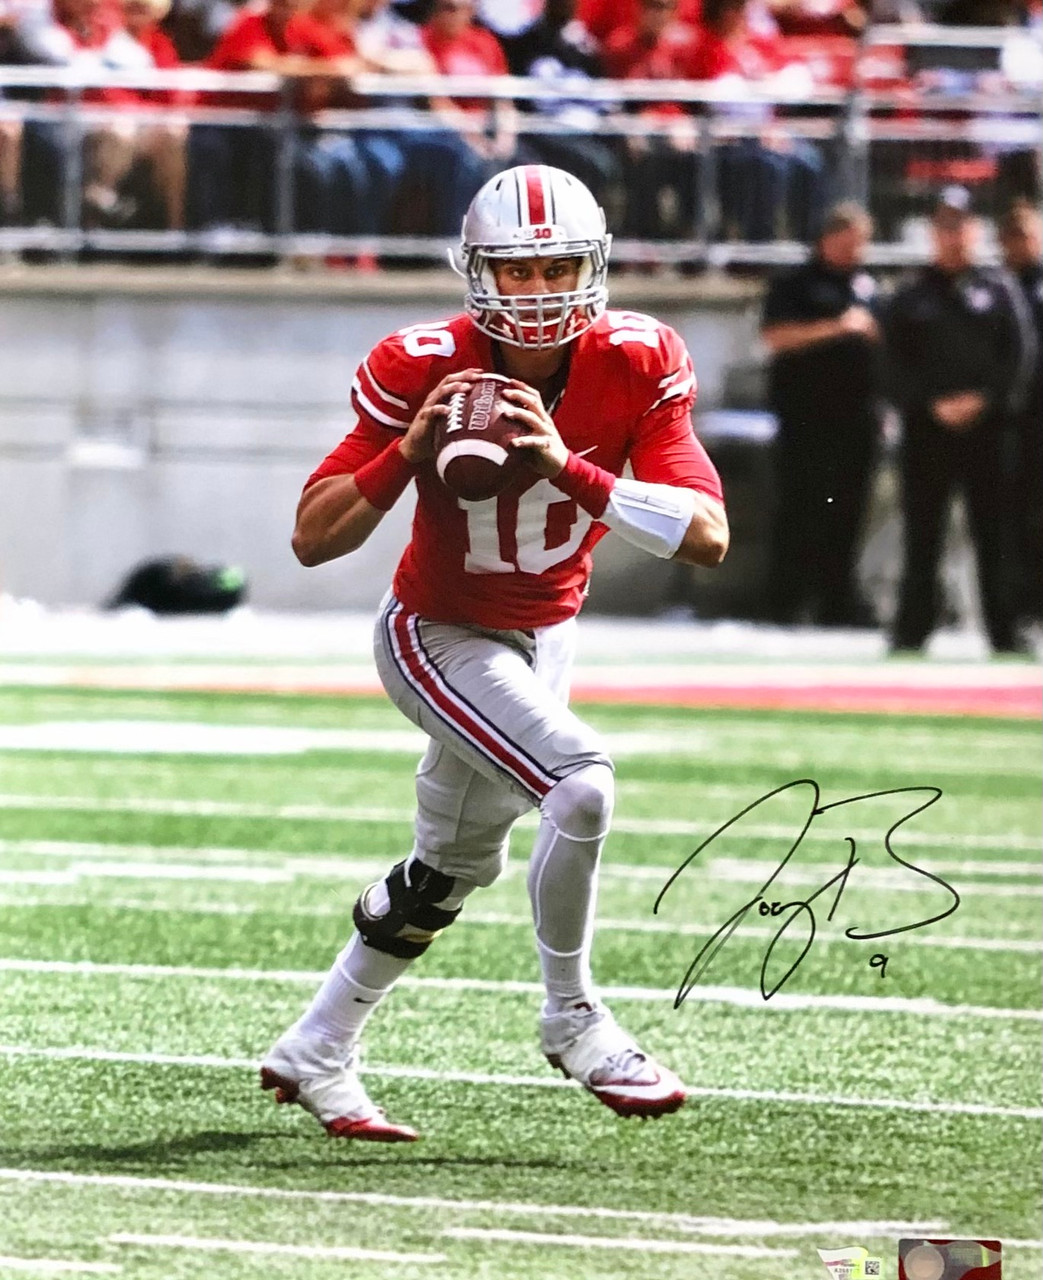 Joe Burrow Ohio State Buckeyes 16-1 16x20 Autographed Photo - Certified Authentic